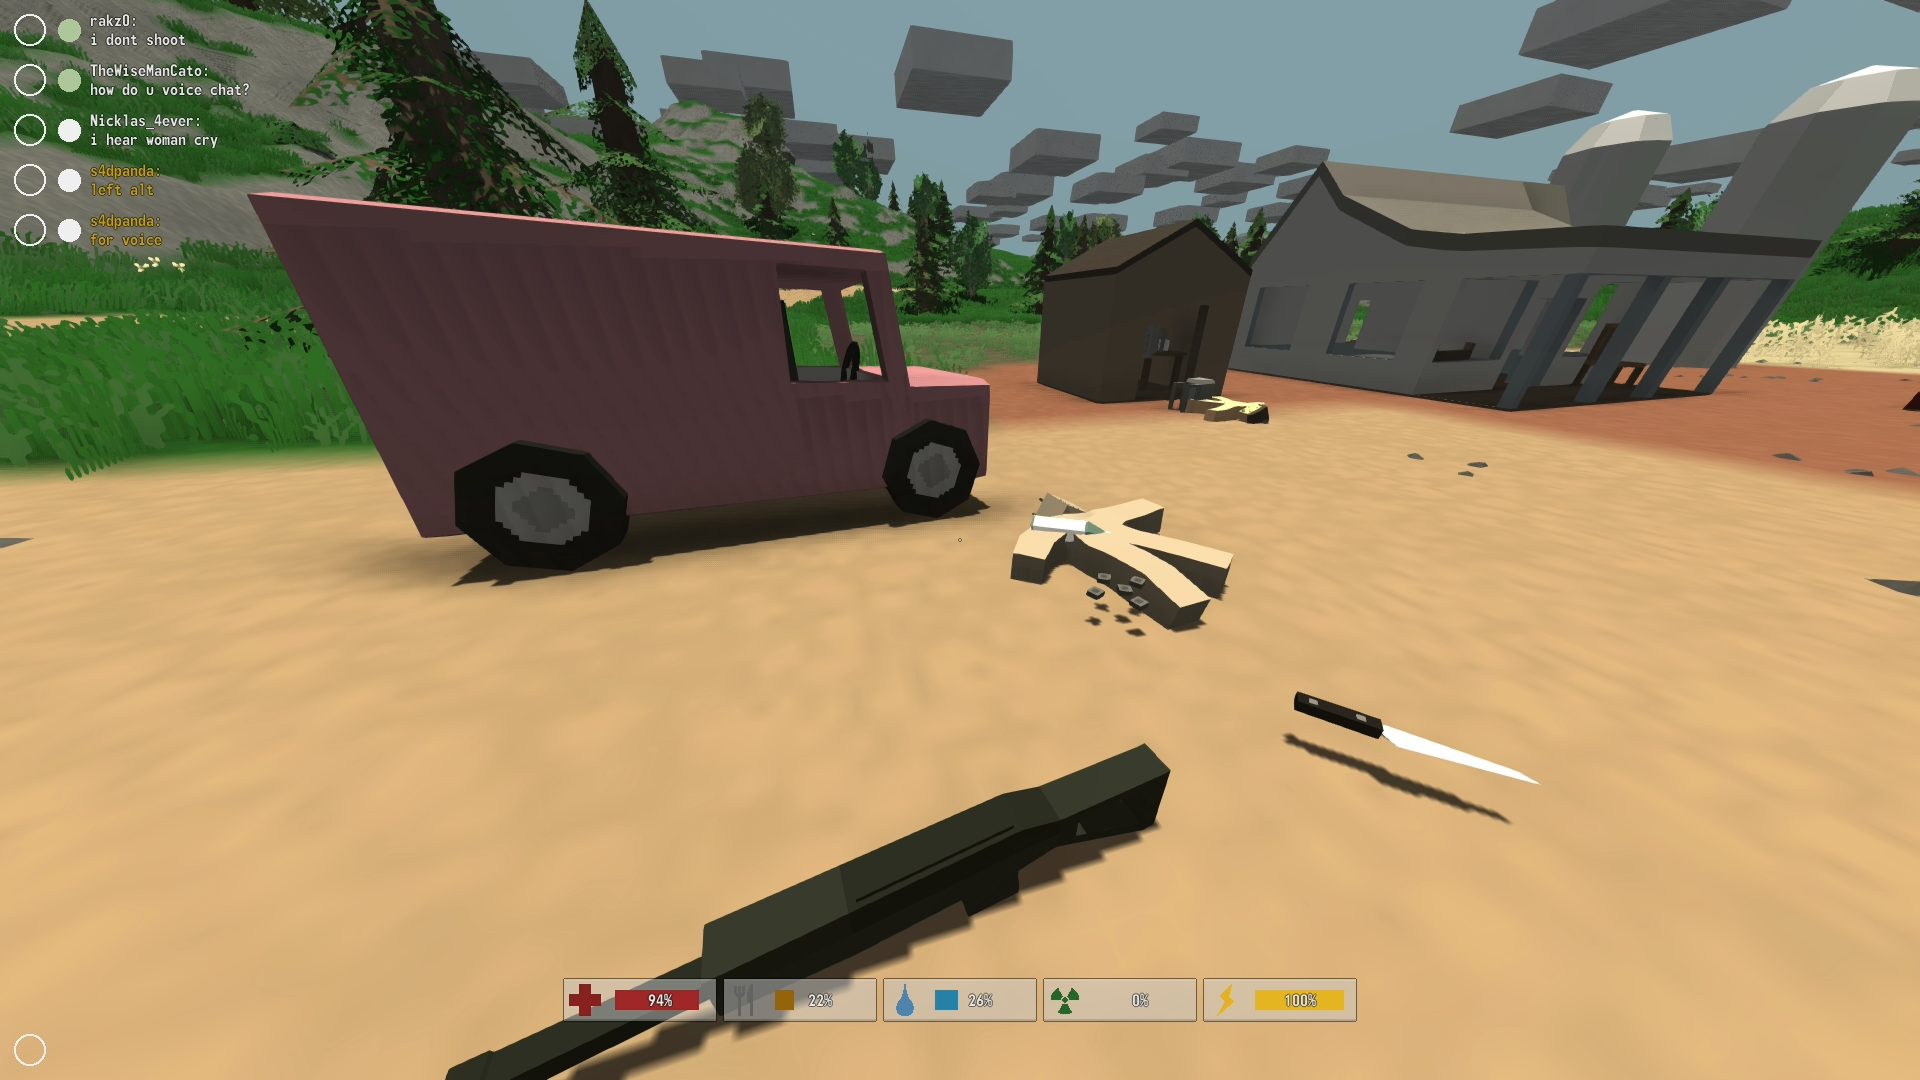 The Scene Of The Crime In The New Unturned Zombie Survival Game That S Free To Play On Steam Unturned Check Out Survival Games Zombie Survival Free To Play